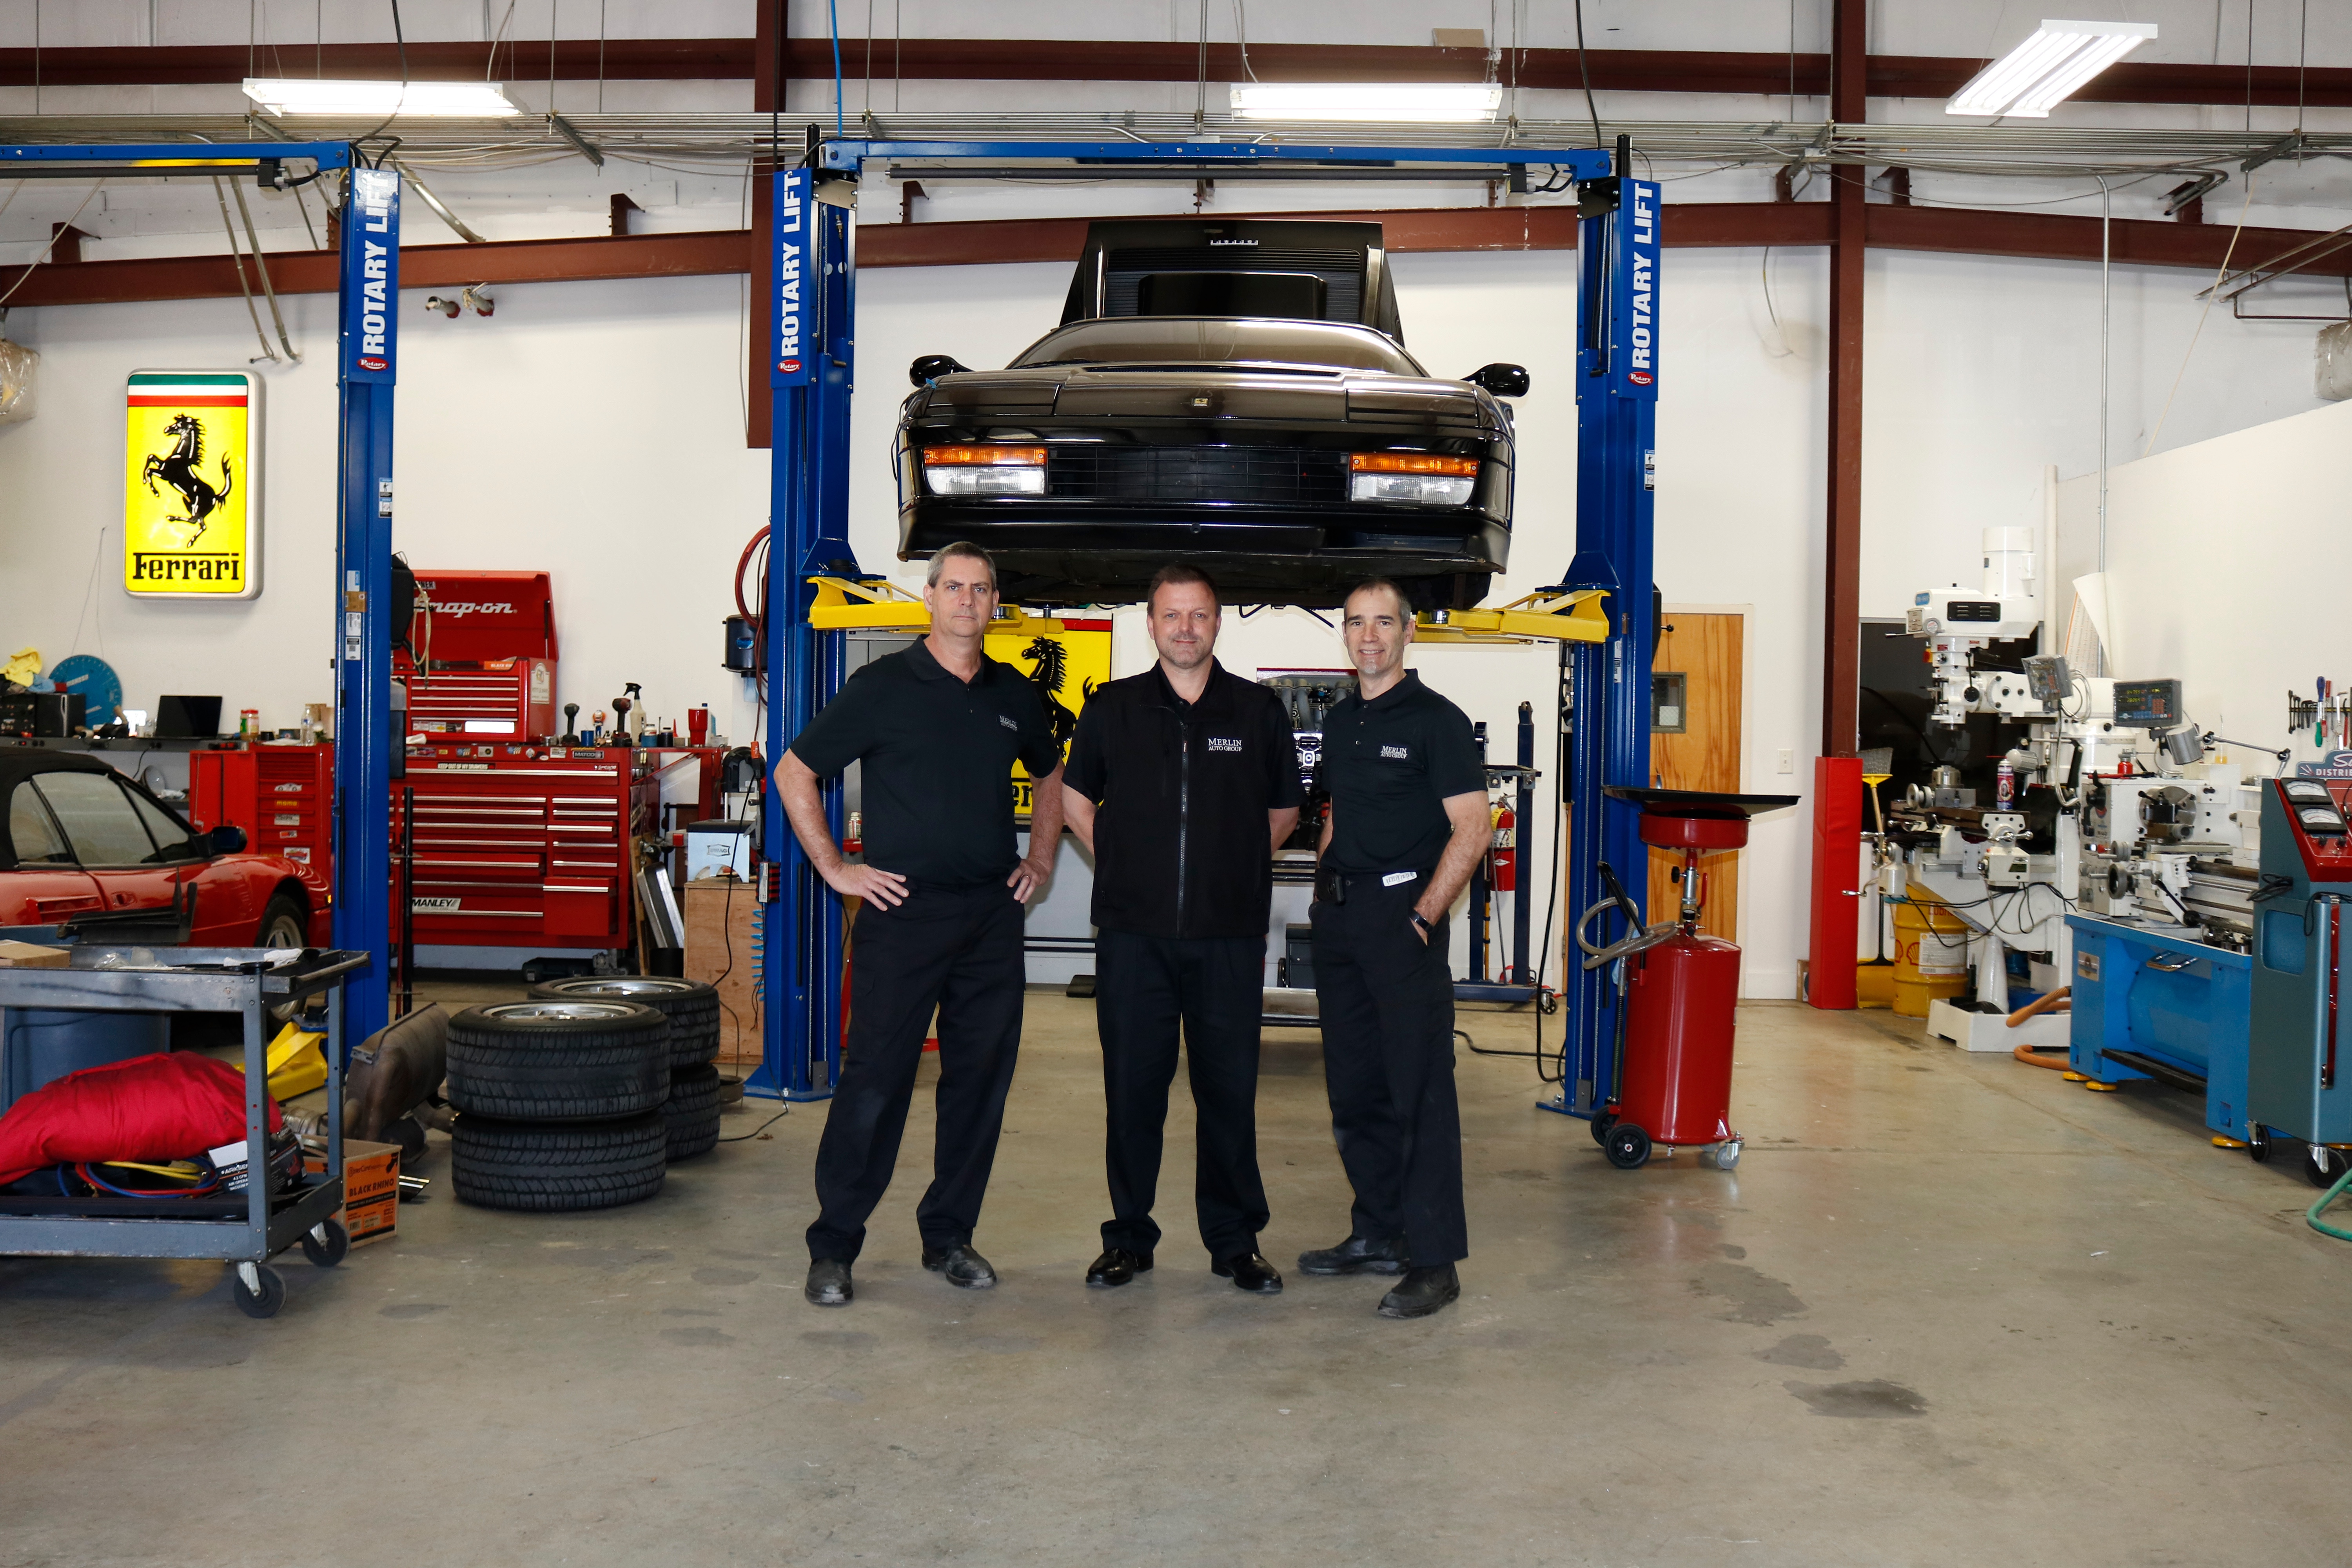 When Having Your Ferrari Serviced, How Important is it Who Services it?